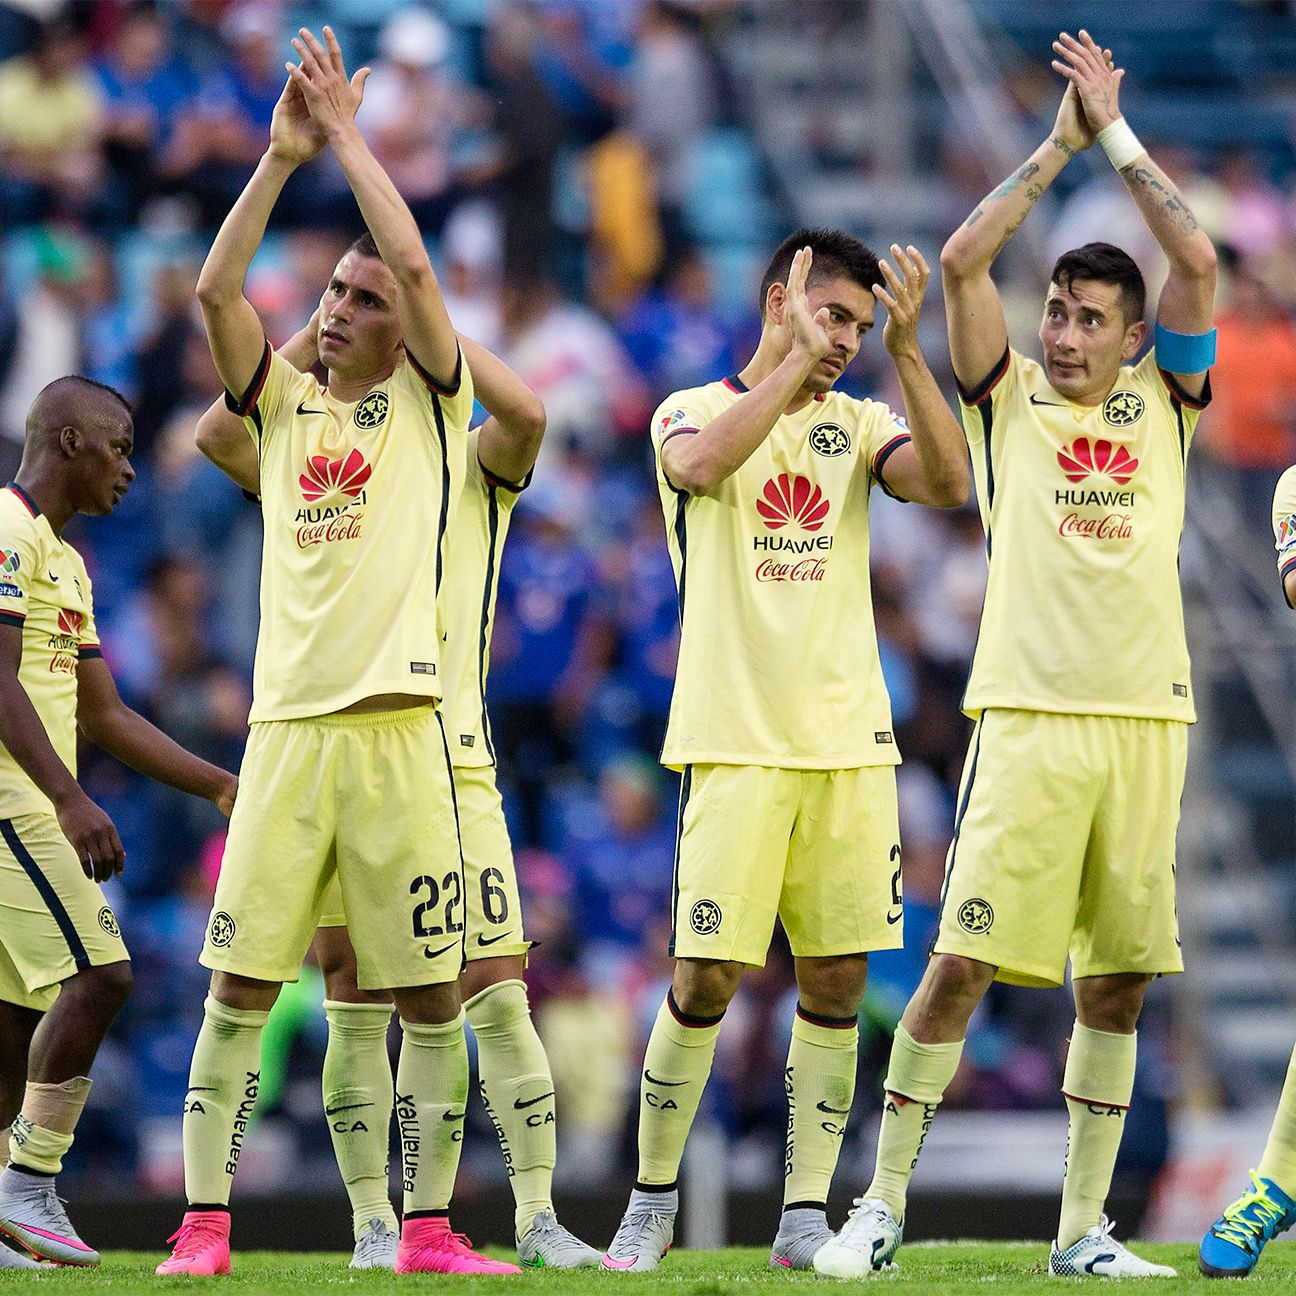 Club America have lost just twice away from home this season in Liga MX.